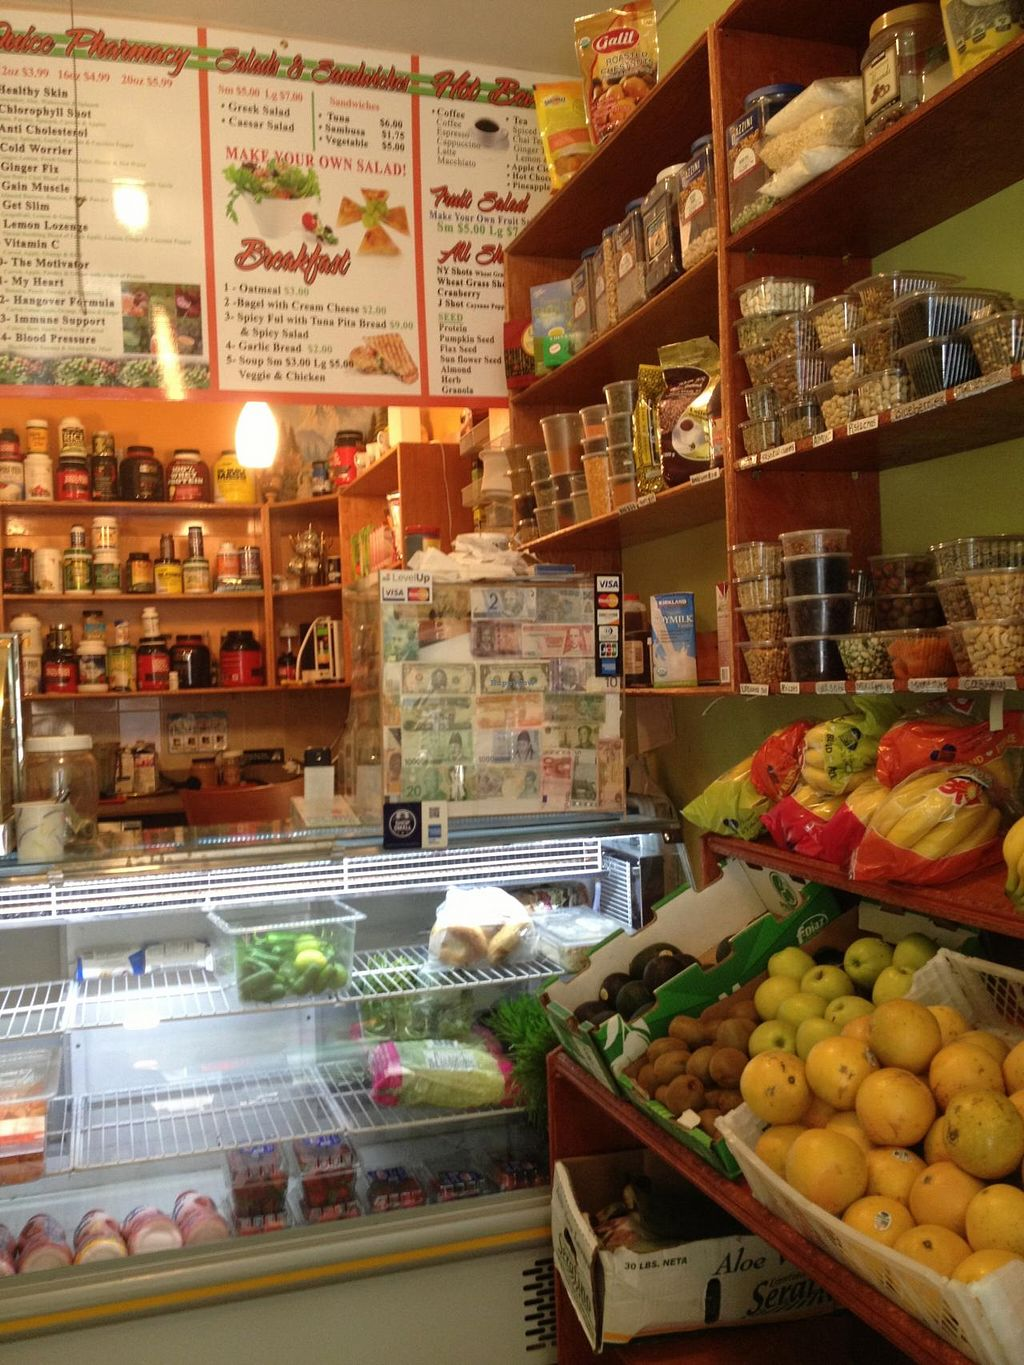 """Photo of Oasis Juice Bar  by <a href=""""/members/profile/aybea"""">aybea</a> <br/>Taken during the summer of 2013. The layout has changed a bit since then! <br/> January 23, 2014  - <a href='/contact/abuse/image/44854/63033'>Report</a>"""